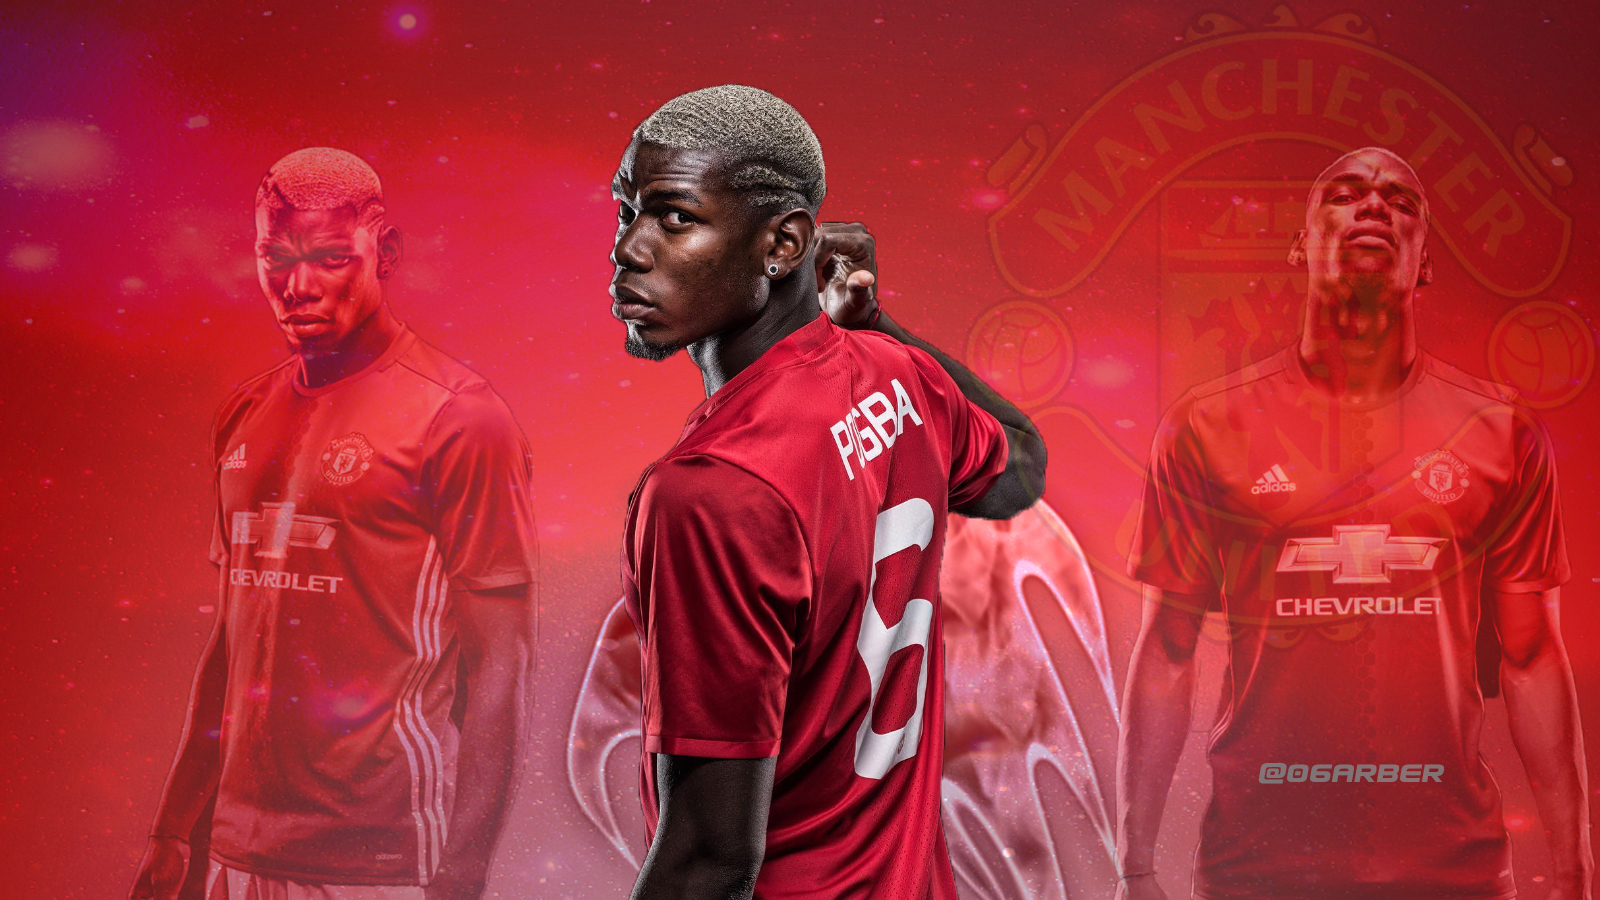 Paul Pogba Wallpaper 2016 Wallpaper And Background Image